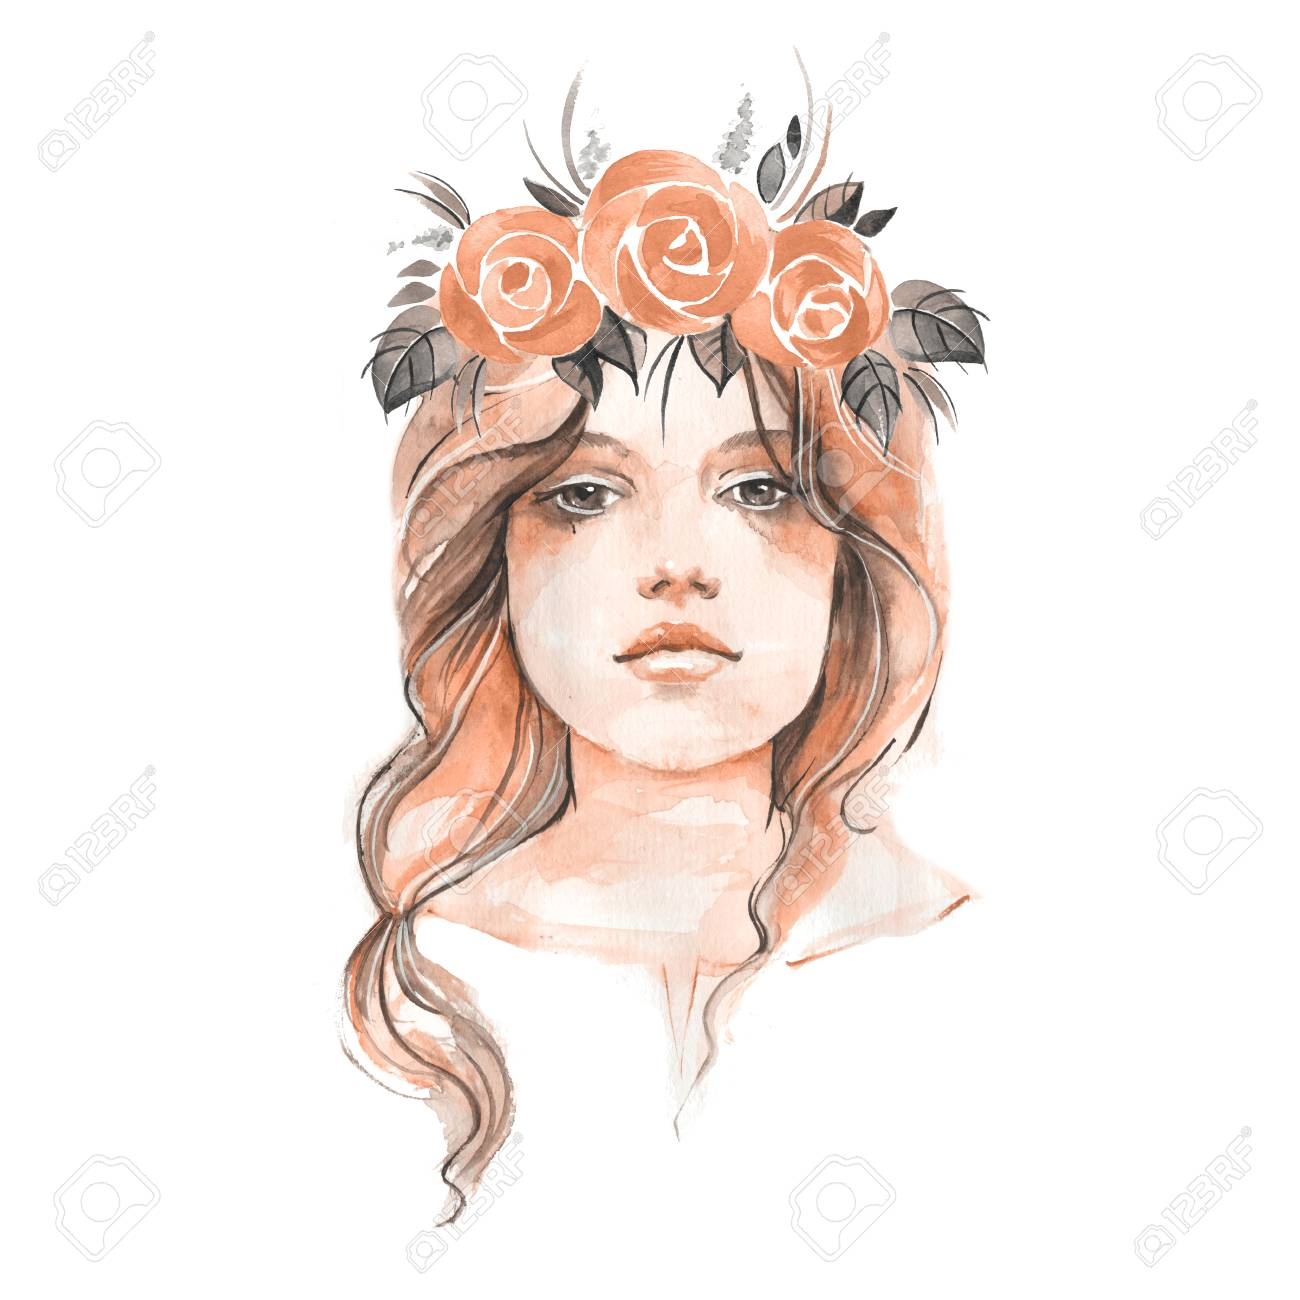 Young girl in floral wreath 1. Female portrait. Hand drawn face. Watercolor illustration - 68141159